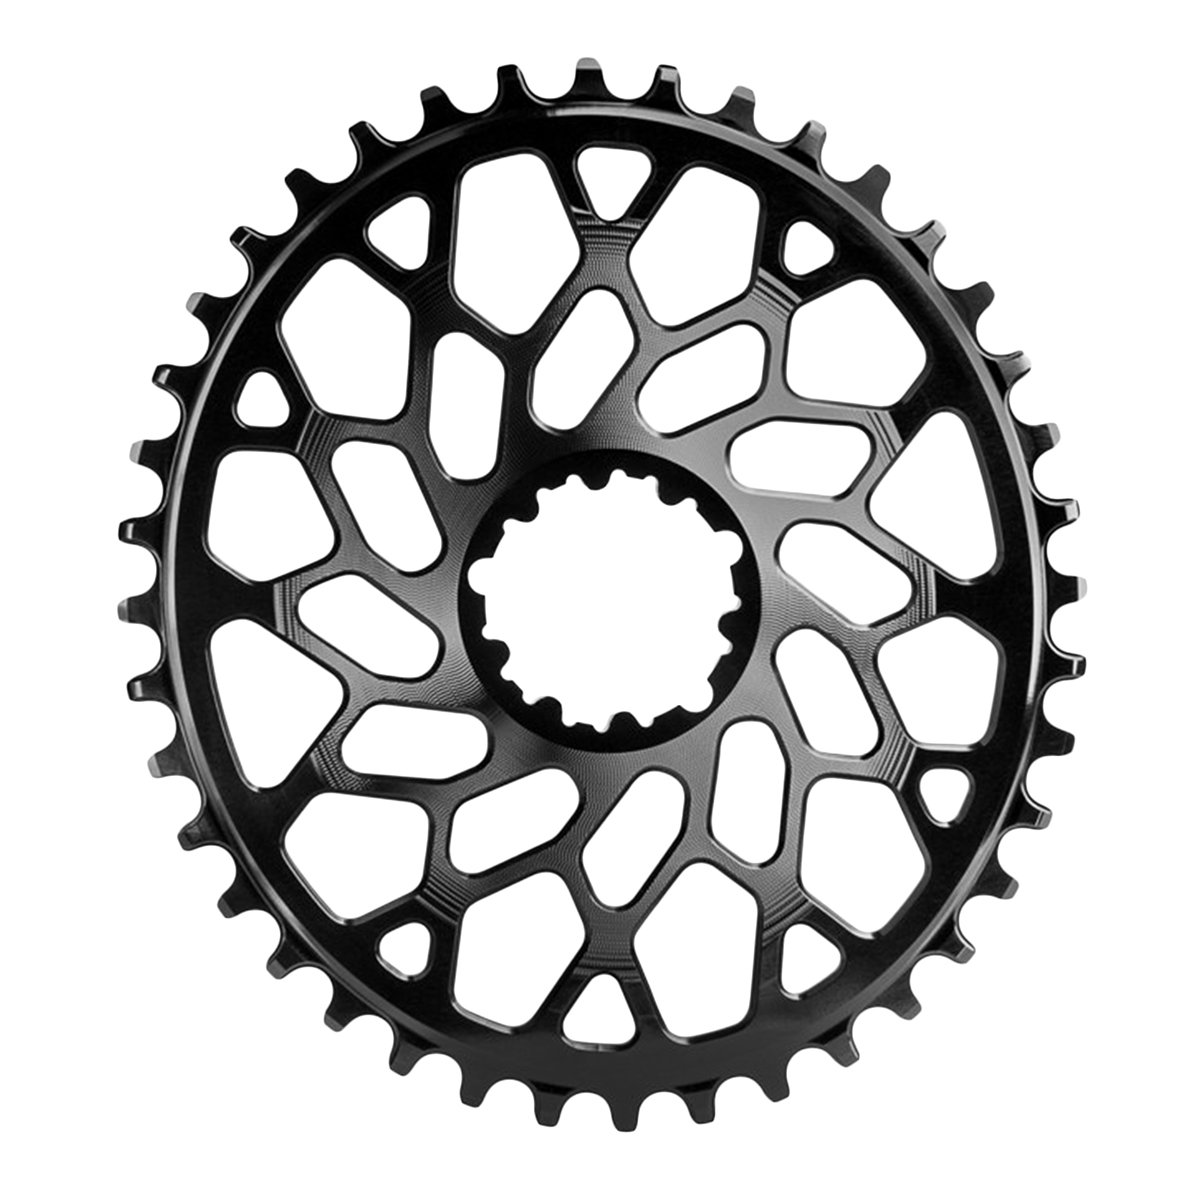 Absolute Black GXP /& BB30 Oval Direct CX Chainring Direct Gxp//bb30 36t Bk